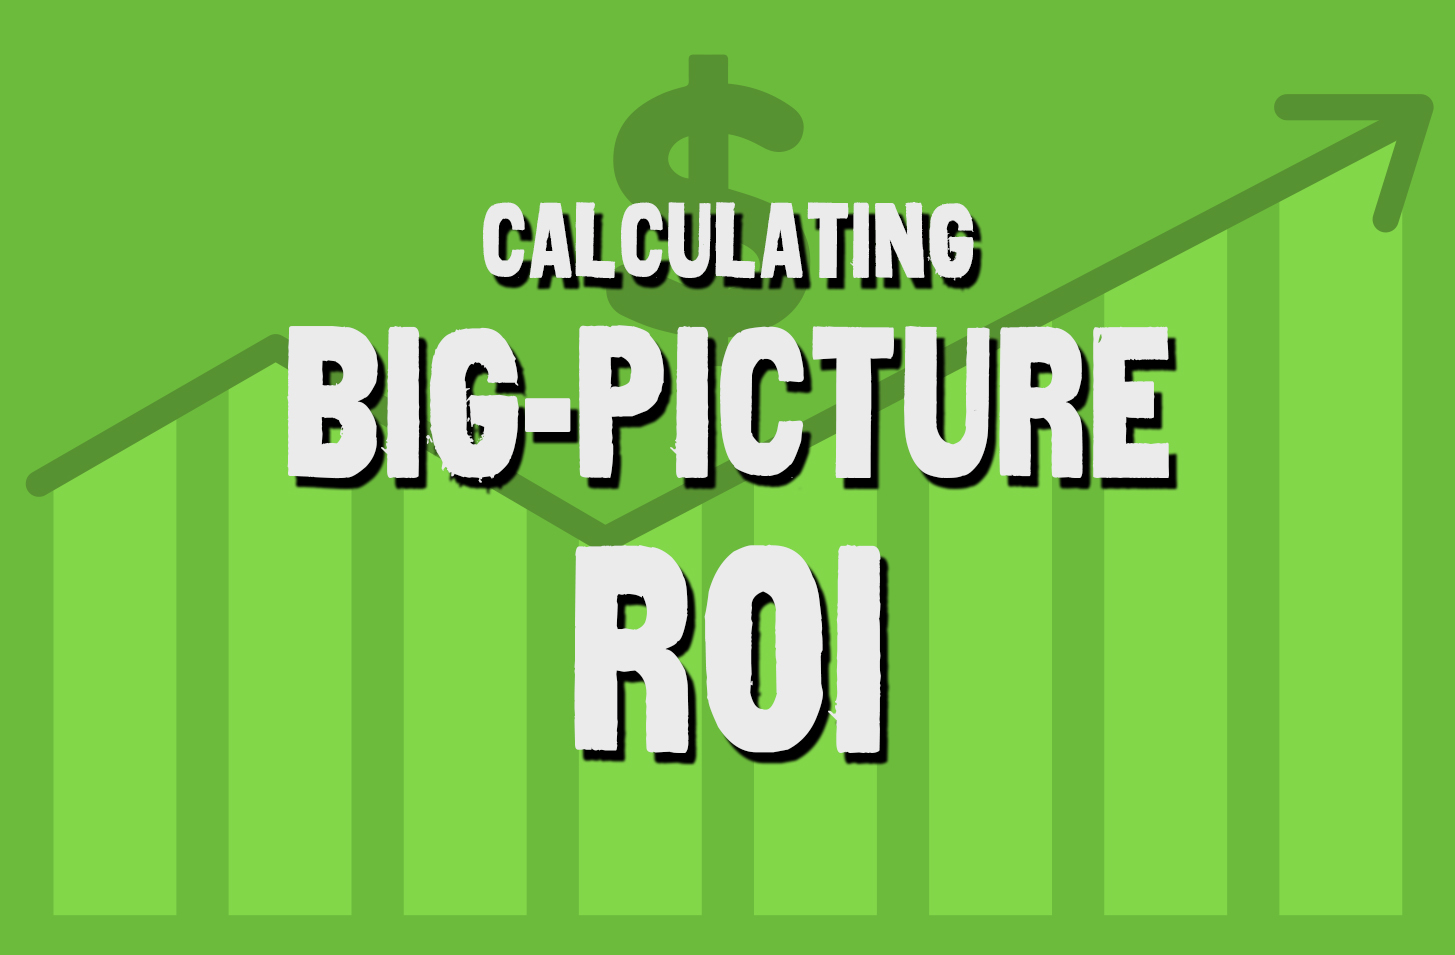 Calculating_BigPicture_ROI.jpg